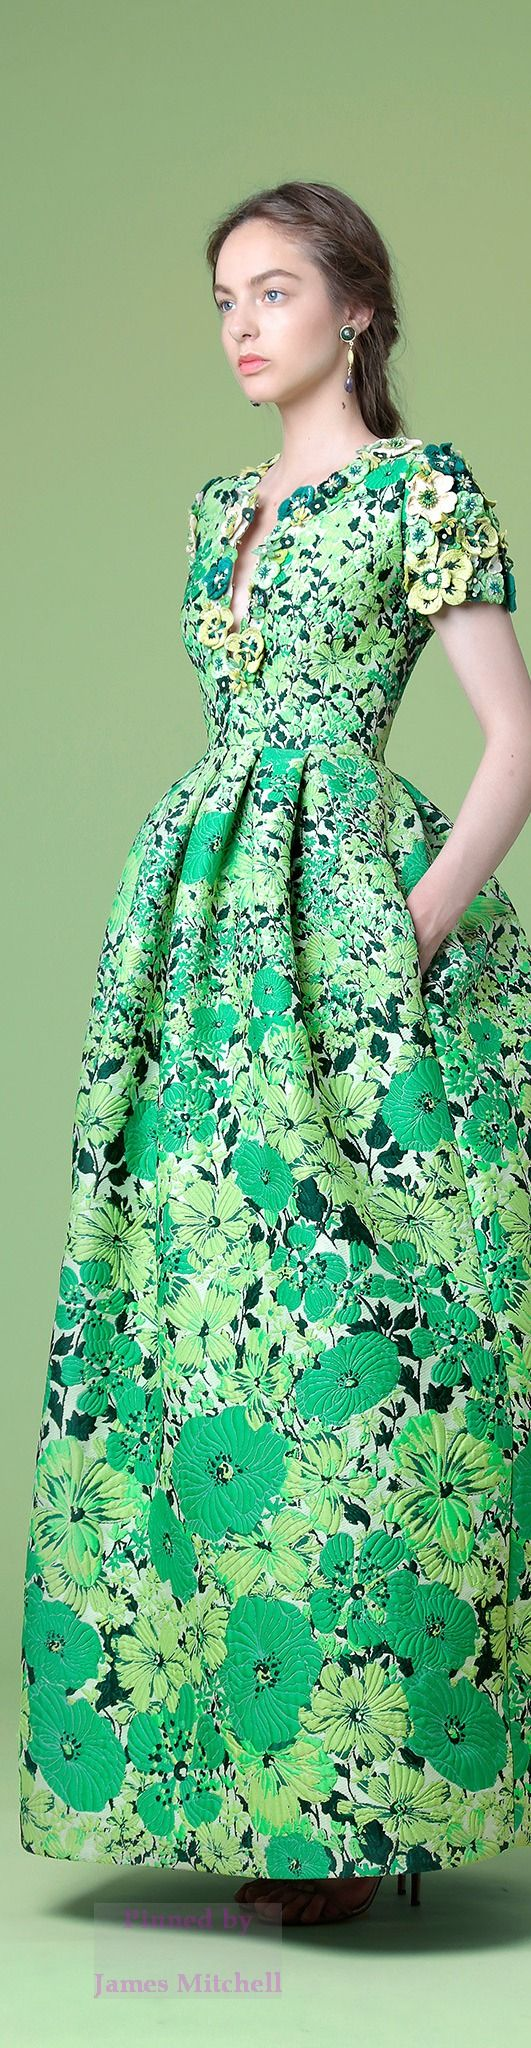 True Spring (12-Tone | Sci\ART method colour analysis) | Andrew Gn Resort 15: floral green gown.